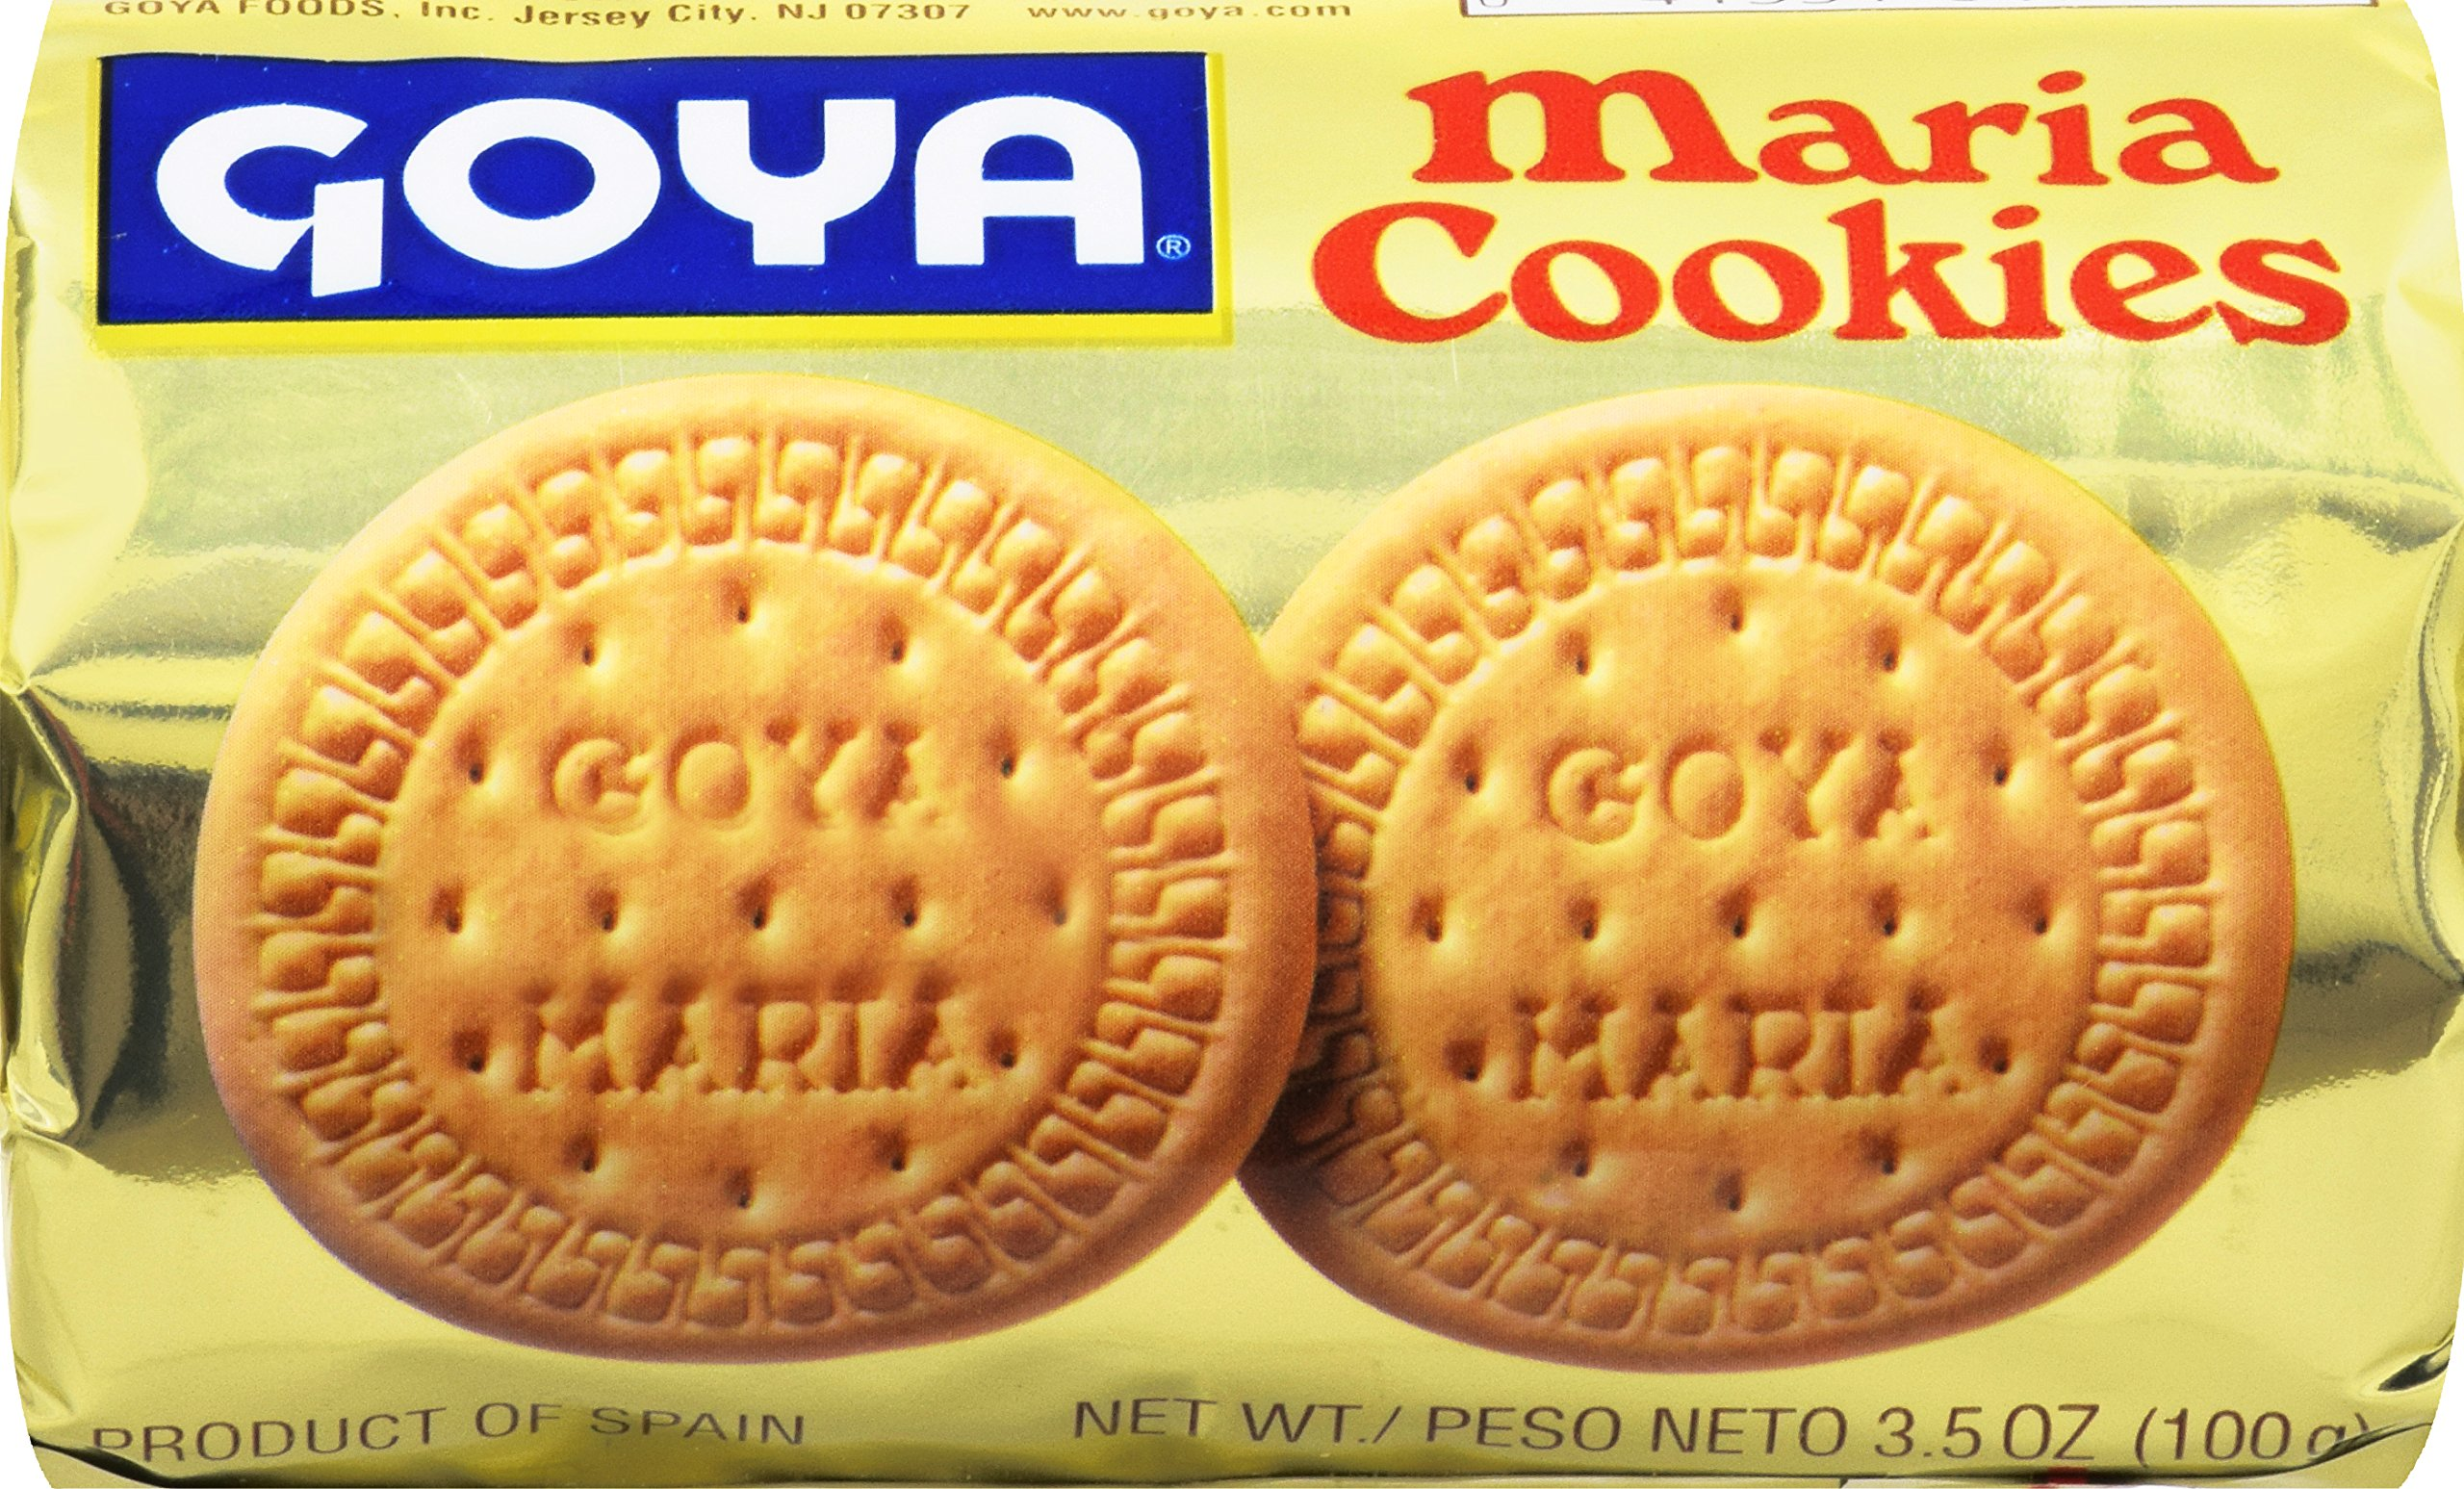 Goya Foods Maria Cookies, 3.5 oz by Goya (Image #5)